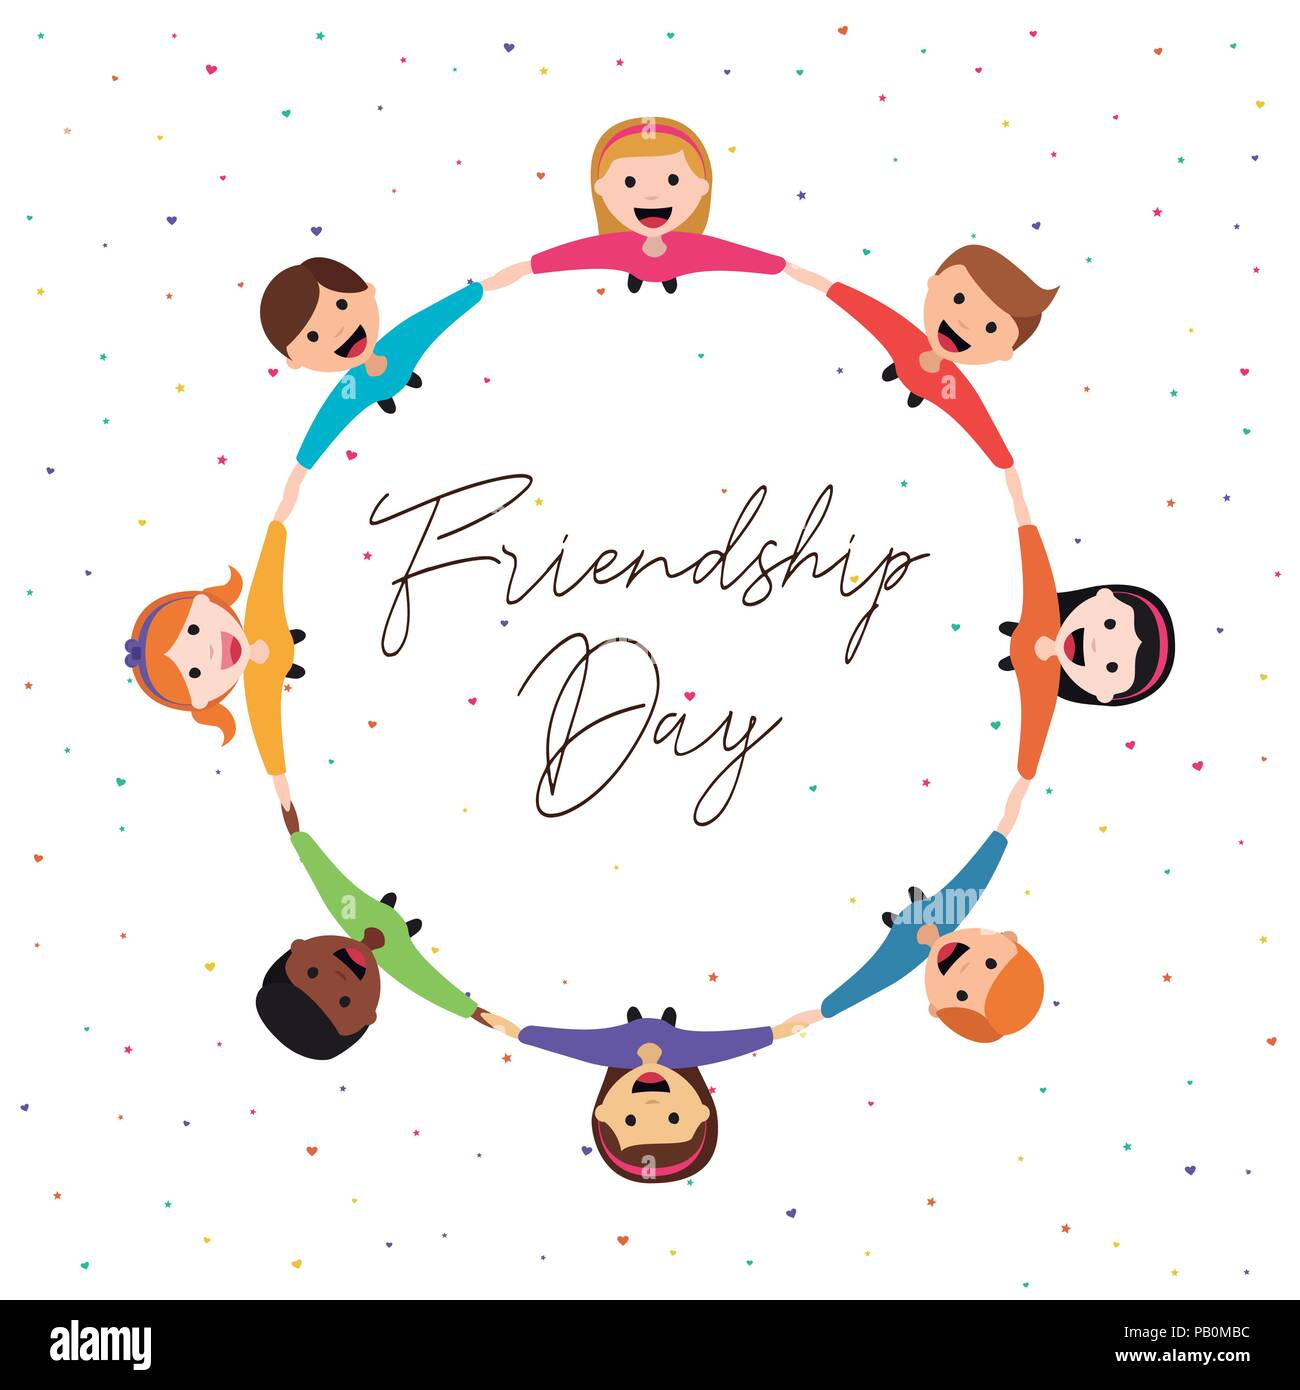 Happy Friendship Day Greeting Card Illustration Of Diverse Children